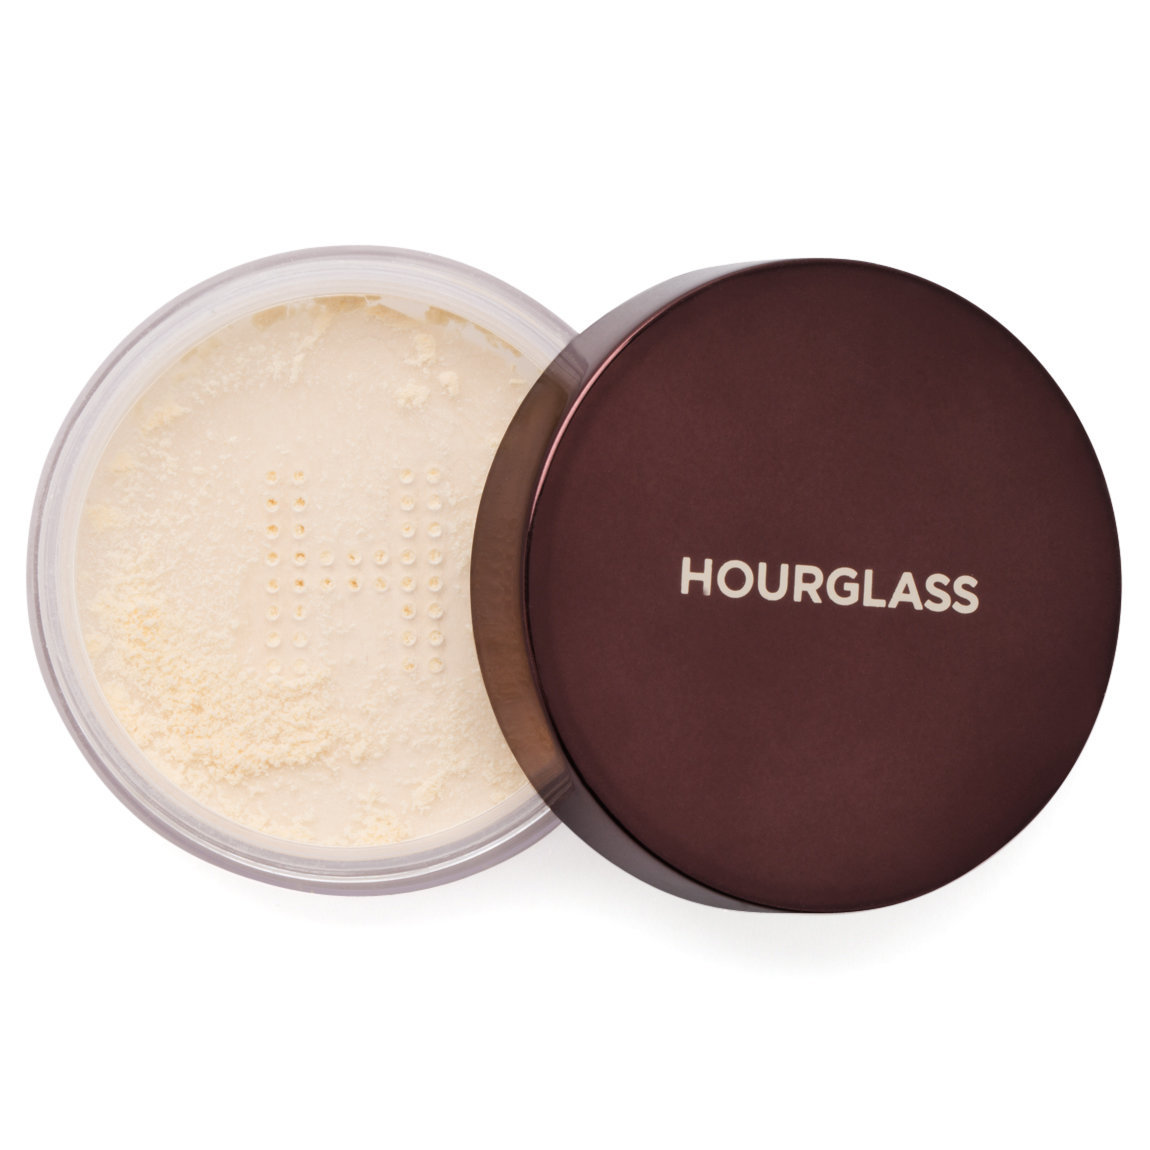 Hourglass Veil Translucent Setting Powder - Travel Size product swatch.